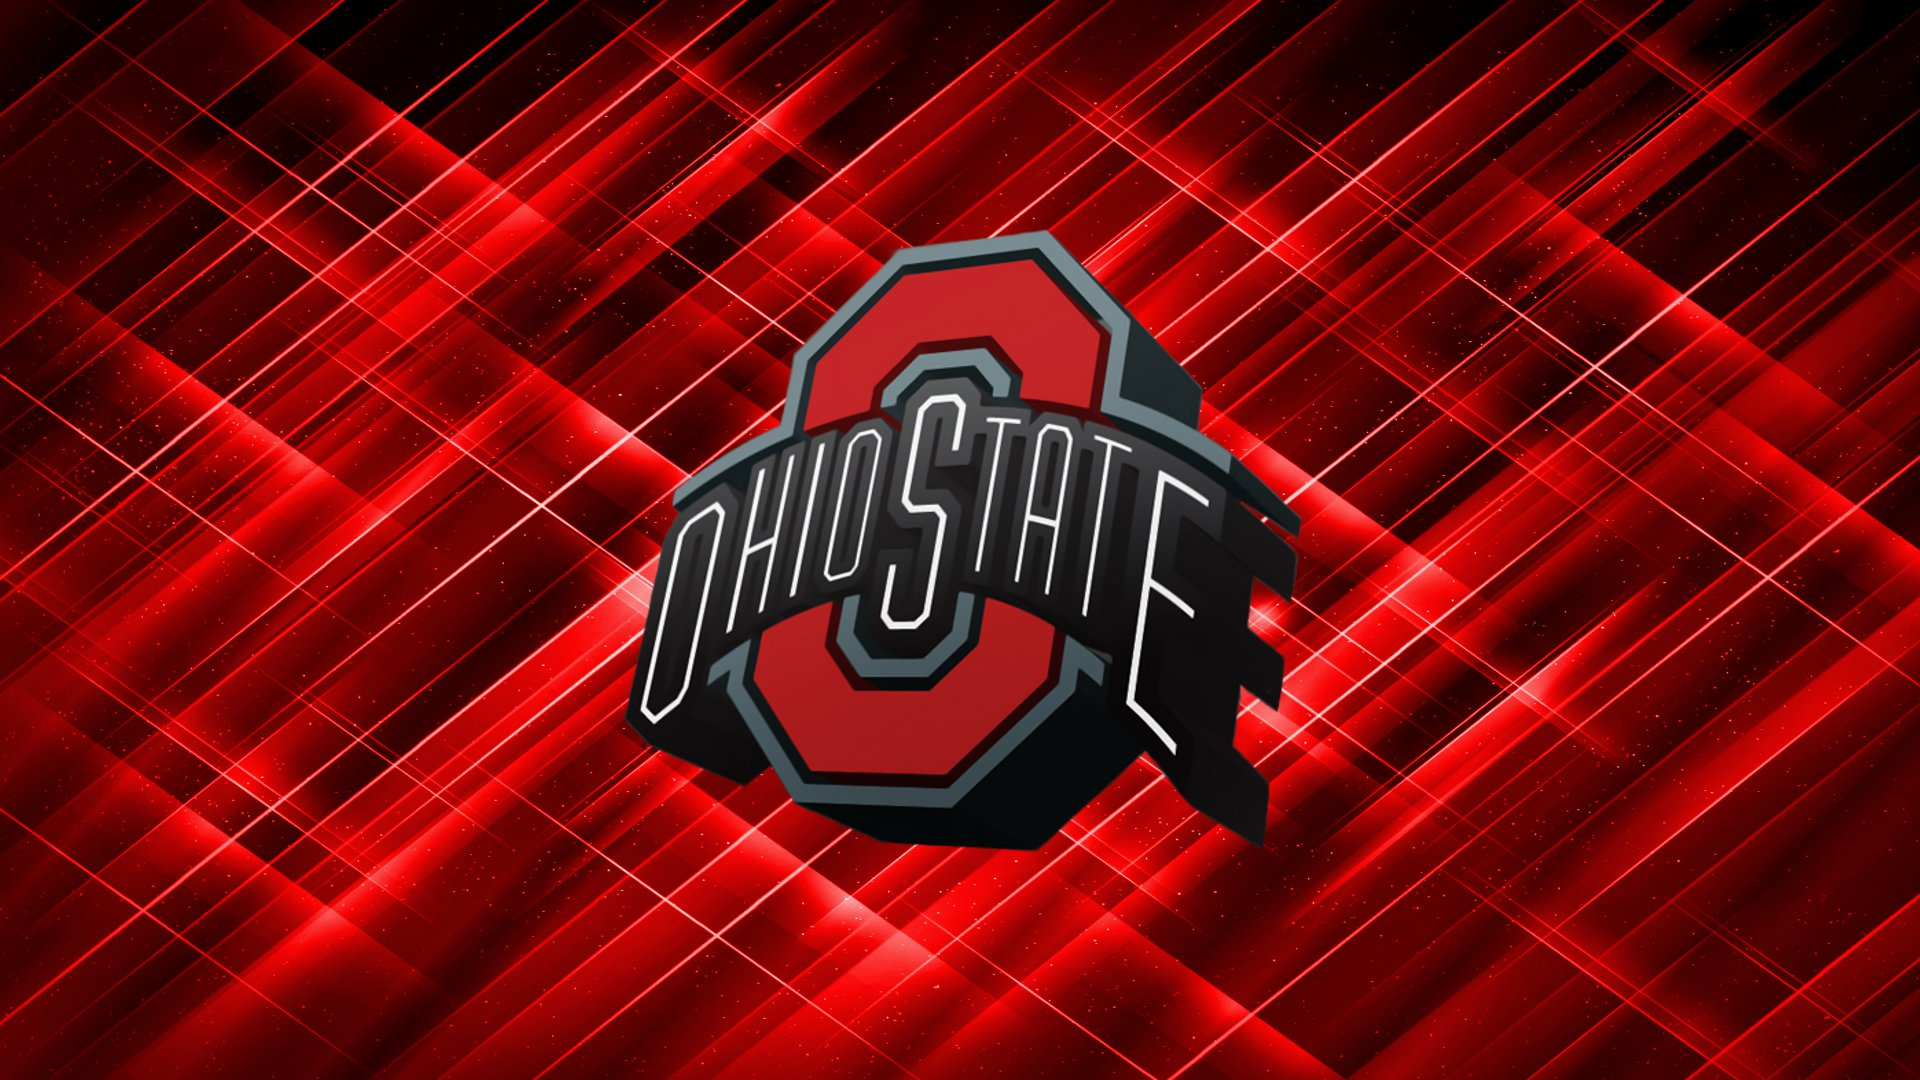 Ohio State Football images OSU Wallpaper 12 HD wallpaper 1920x1080